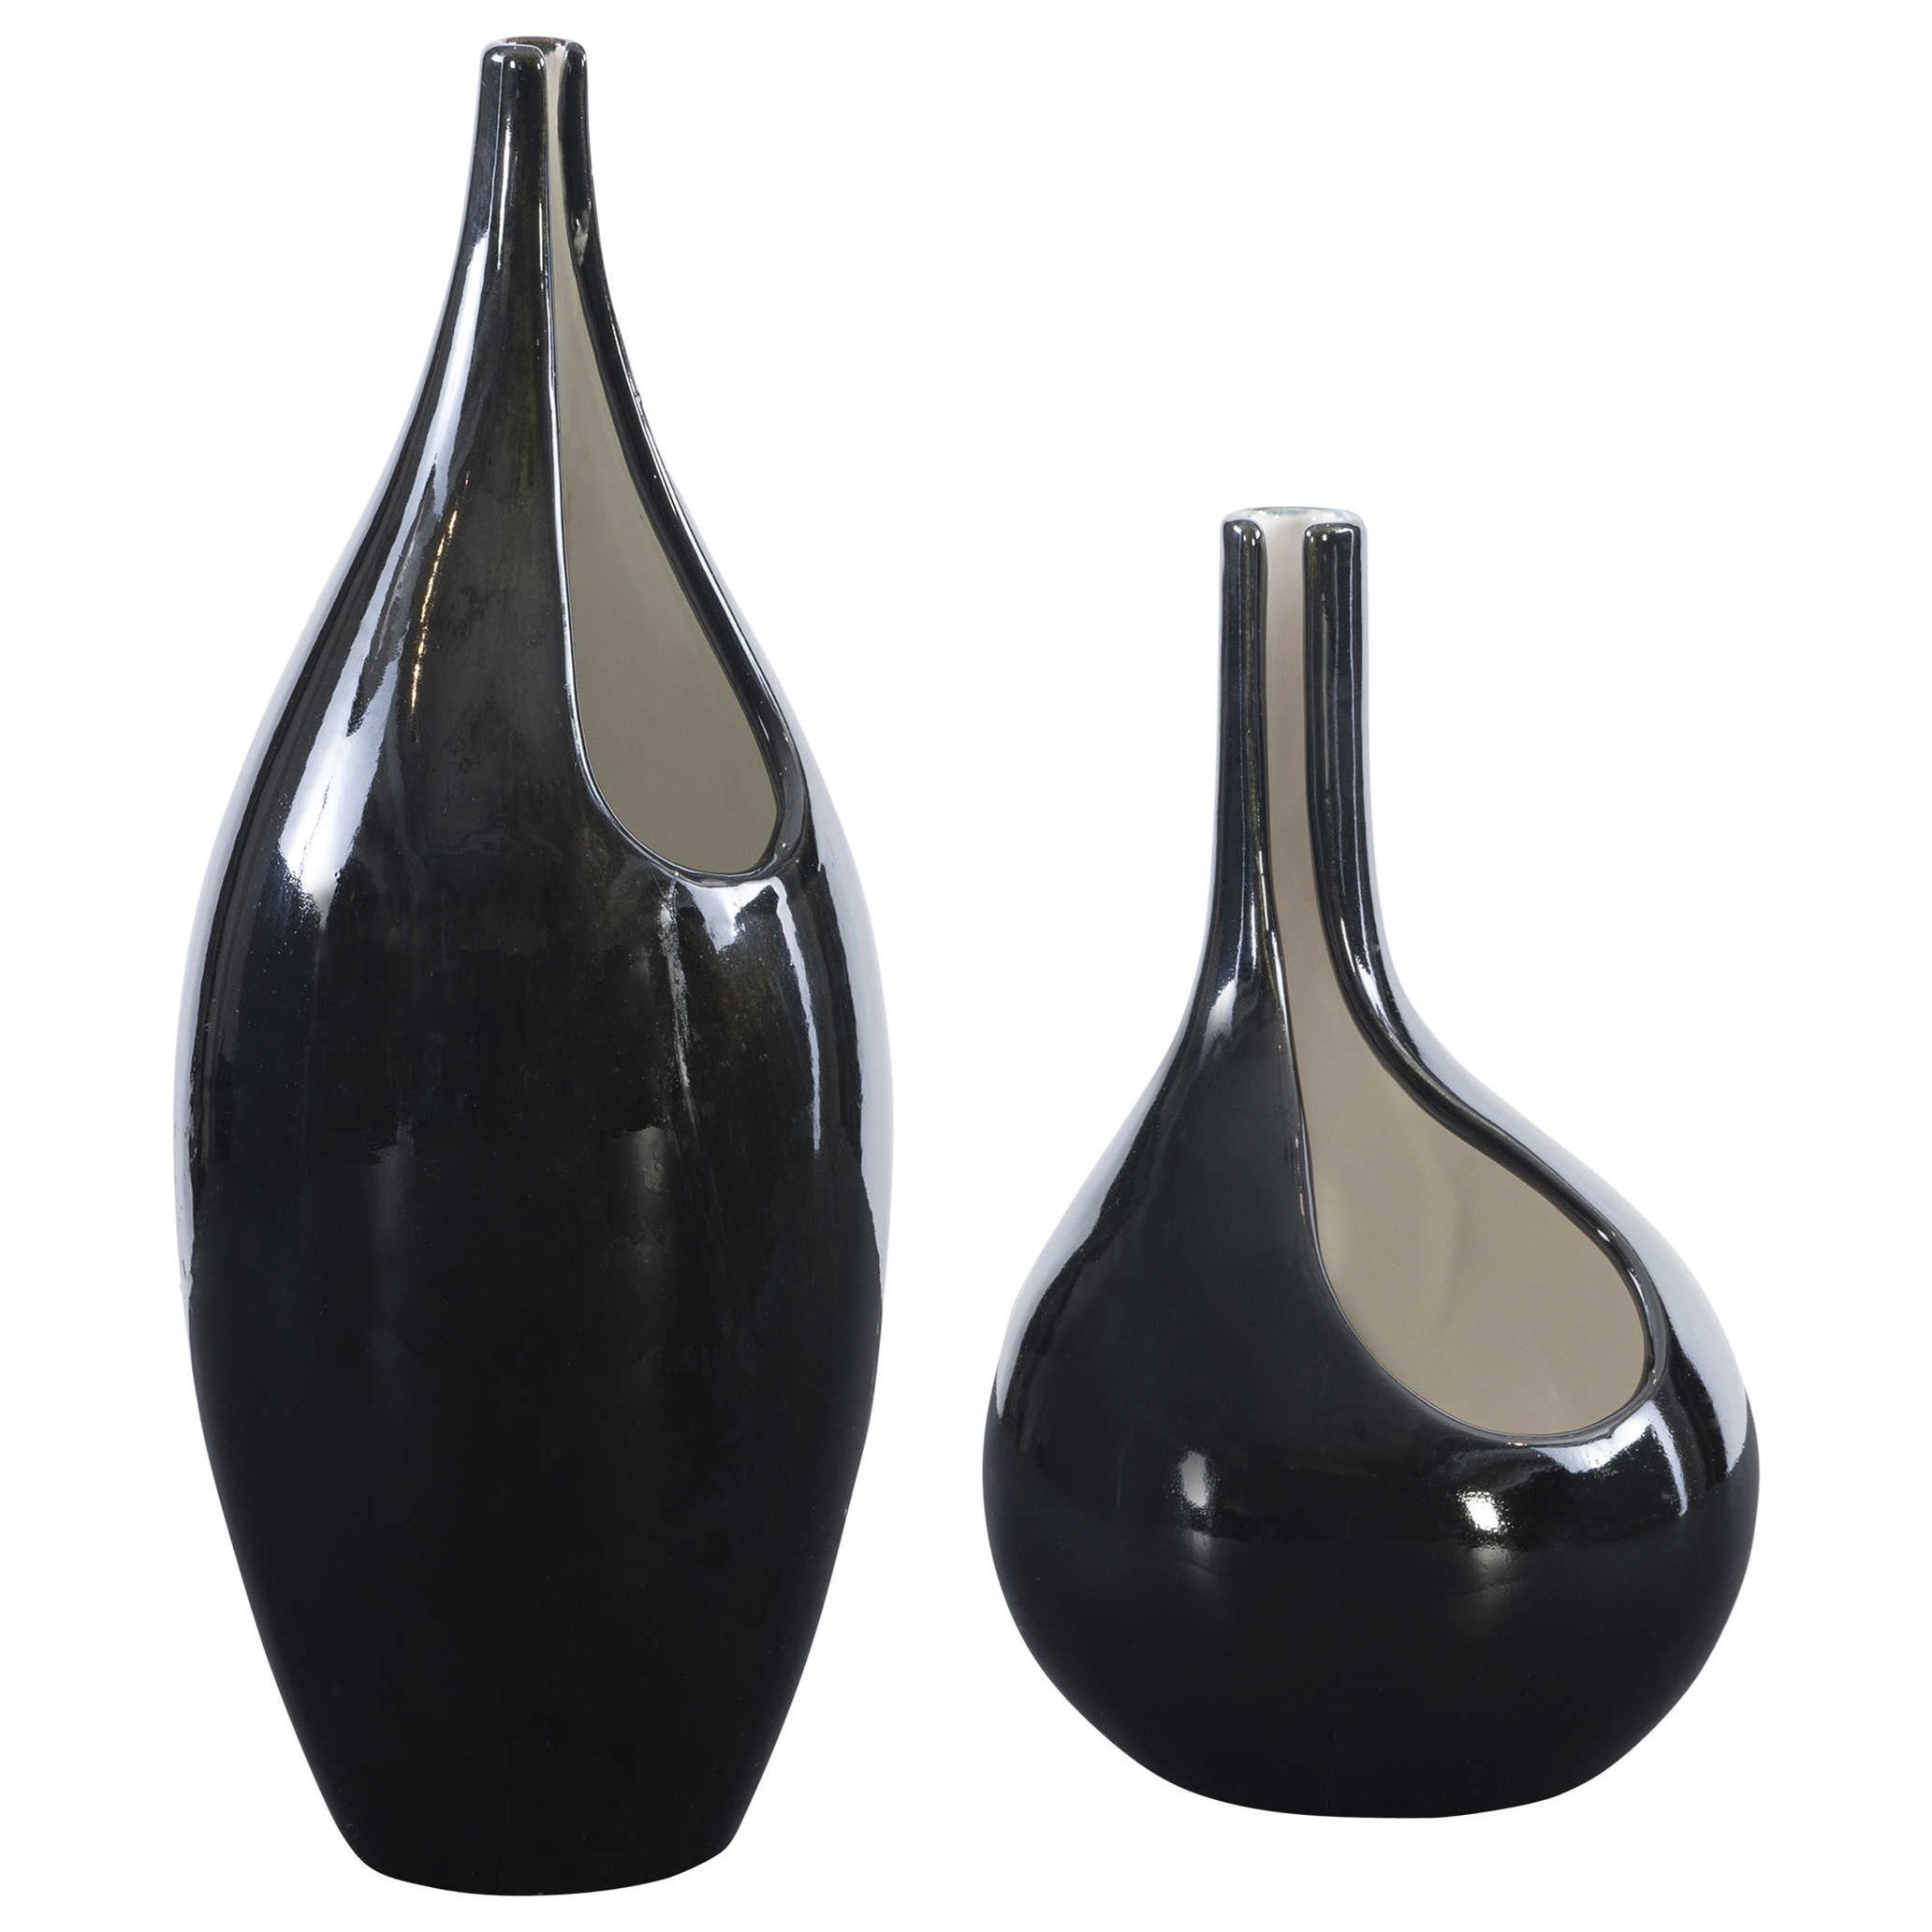 Accessories - Vases and Urns Lockwood Modern Vases, S/2 by Uttermost at Mueller Furniture